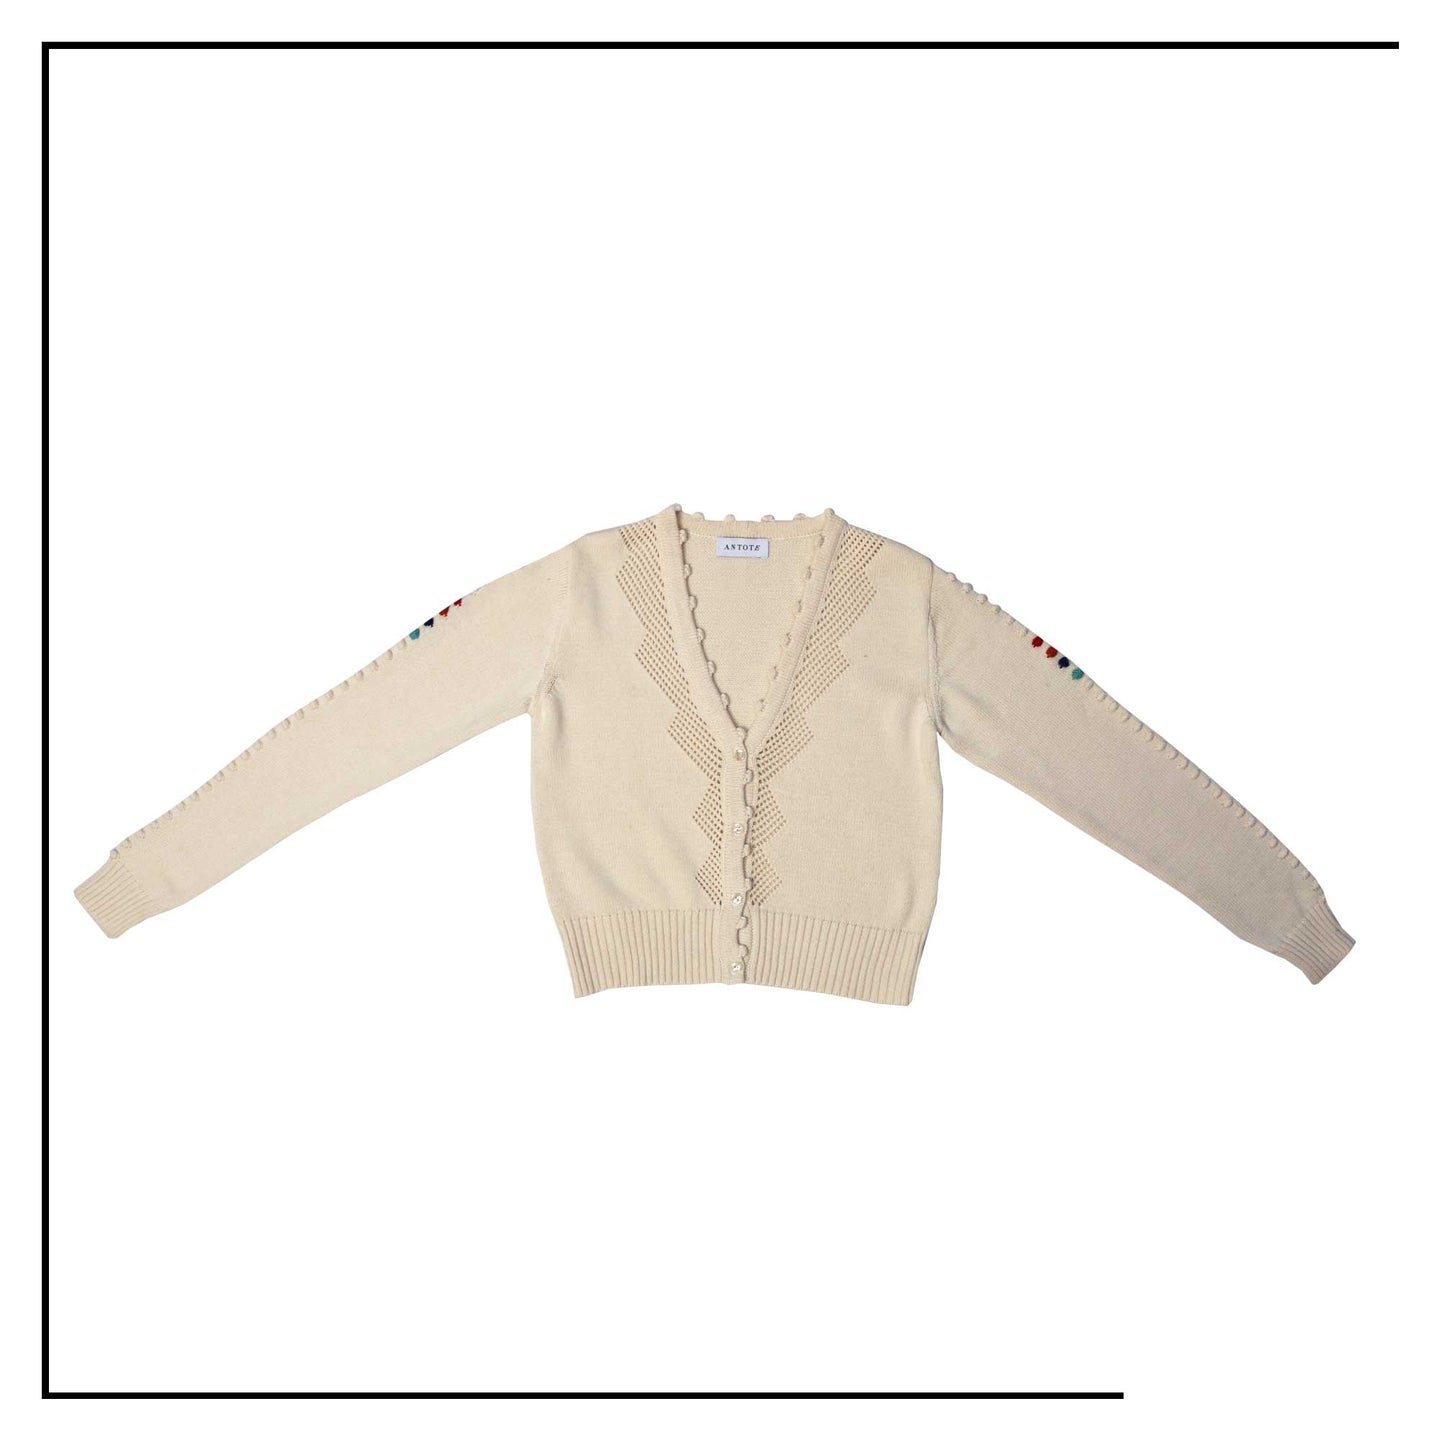 ANTOTE_OLIA Knitted Cardigan Cream